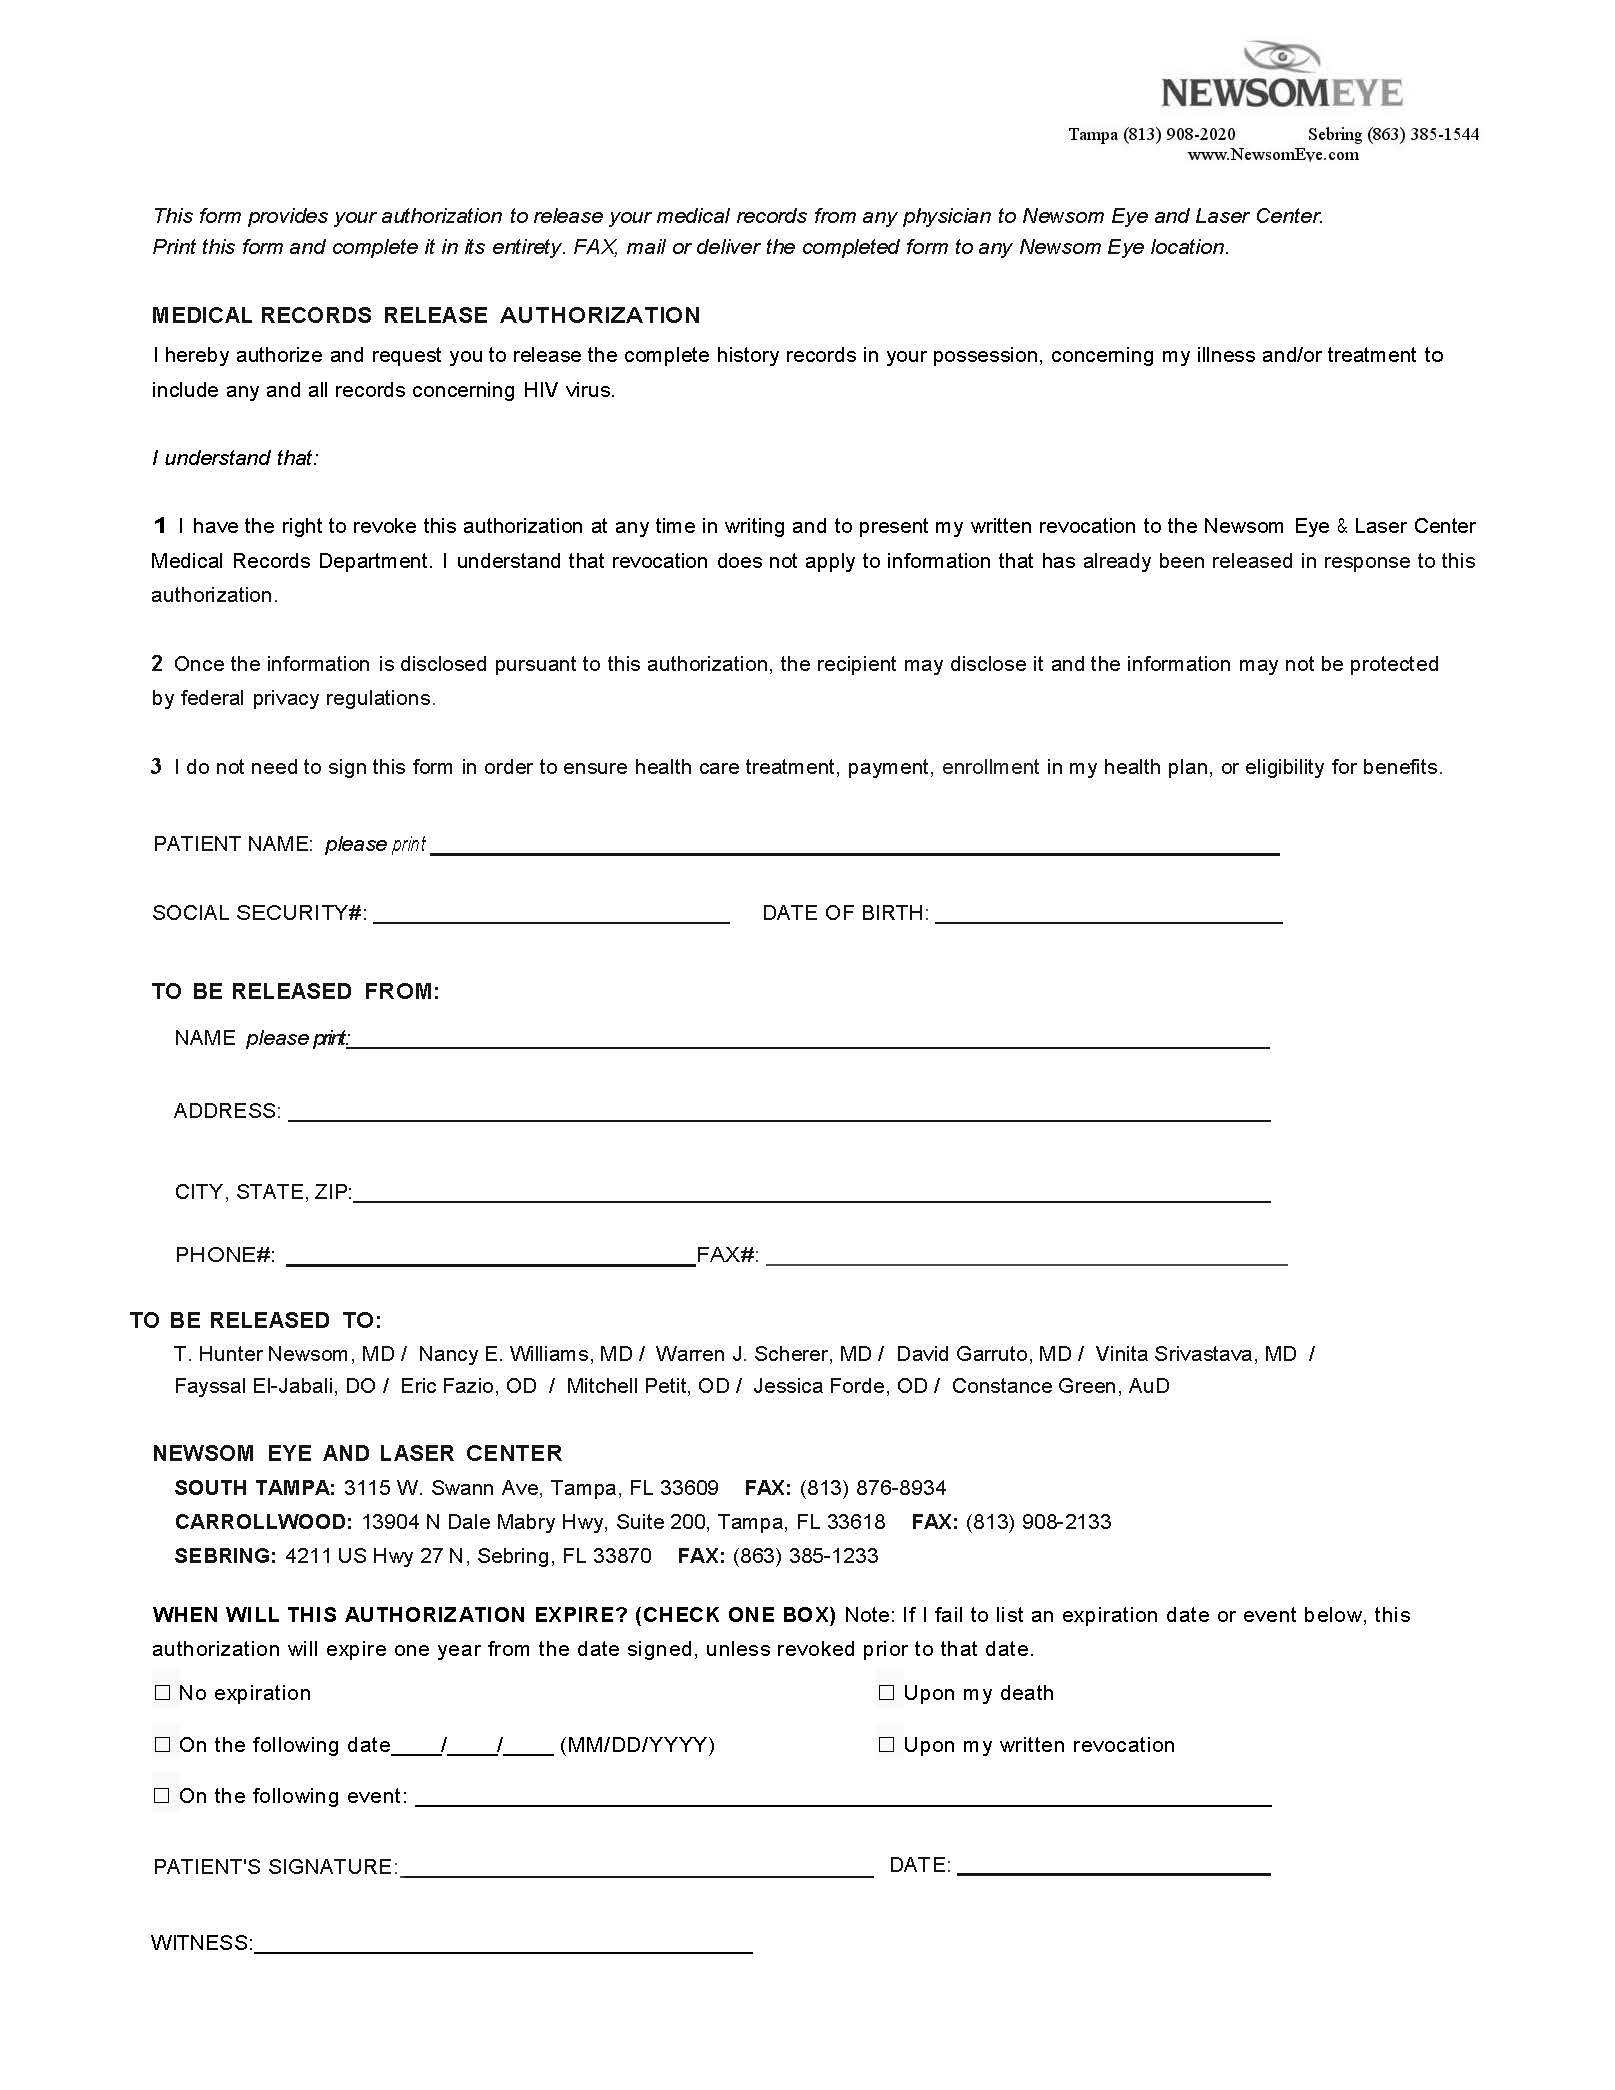 Medical Records Release Letter Template - Patient Medical Release forms Tampa Florida Newsom Eye